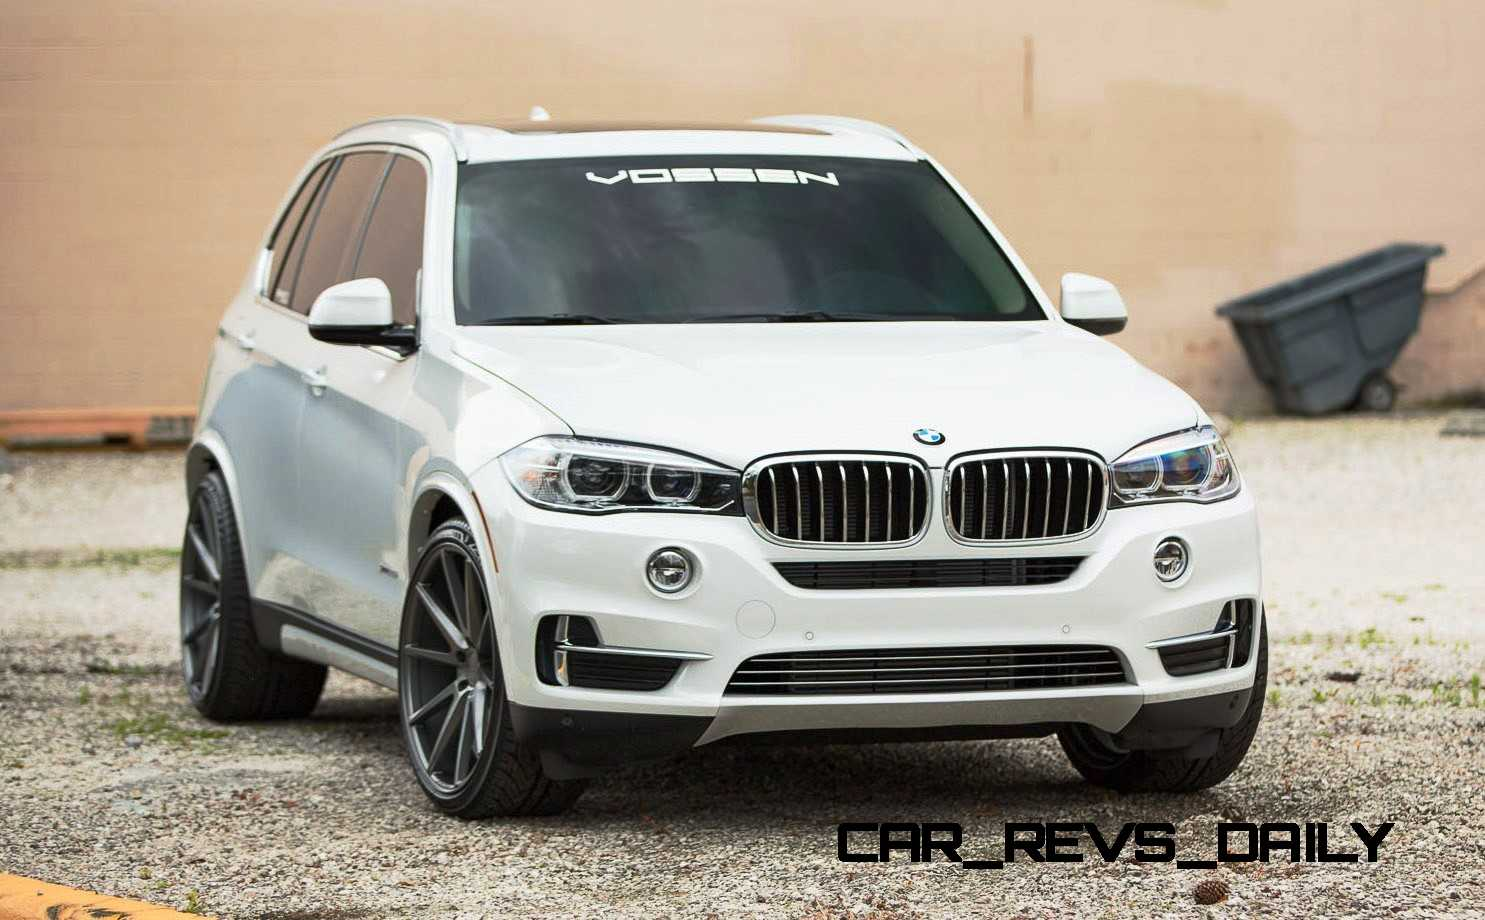 VOSSEN VFS1 Wheels on 2015 BMW X5 sDrive35i M Sport 21